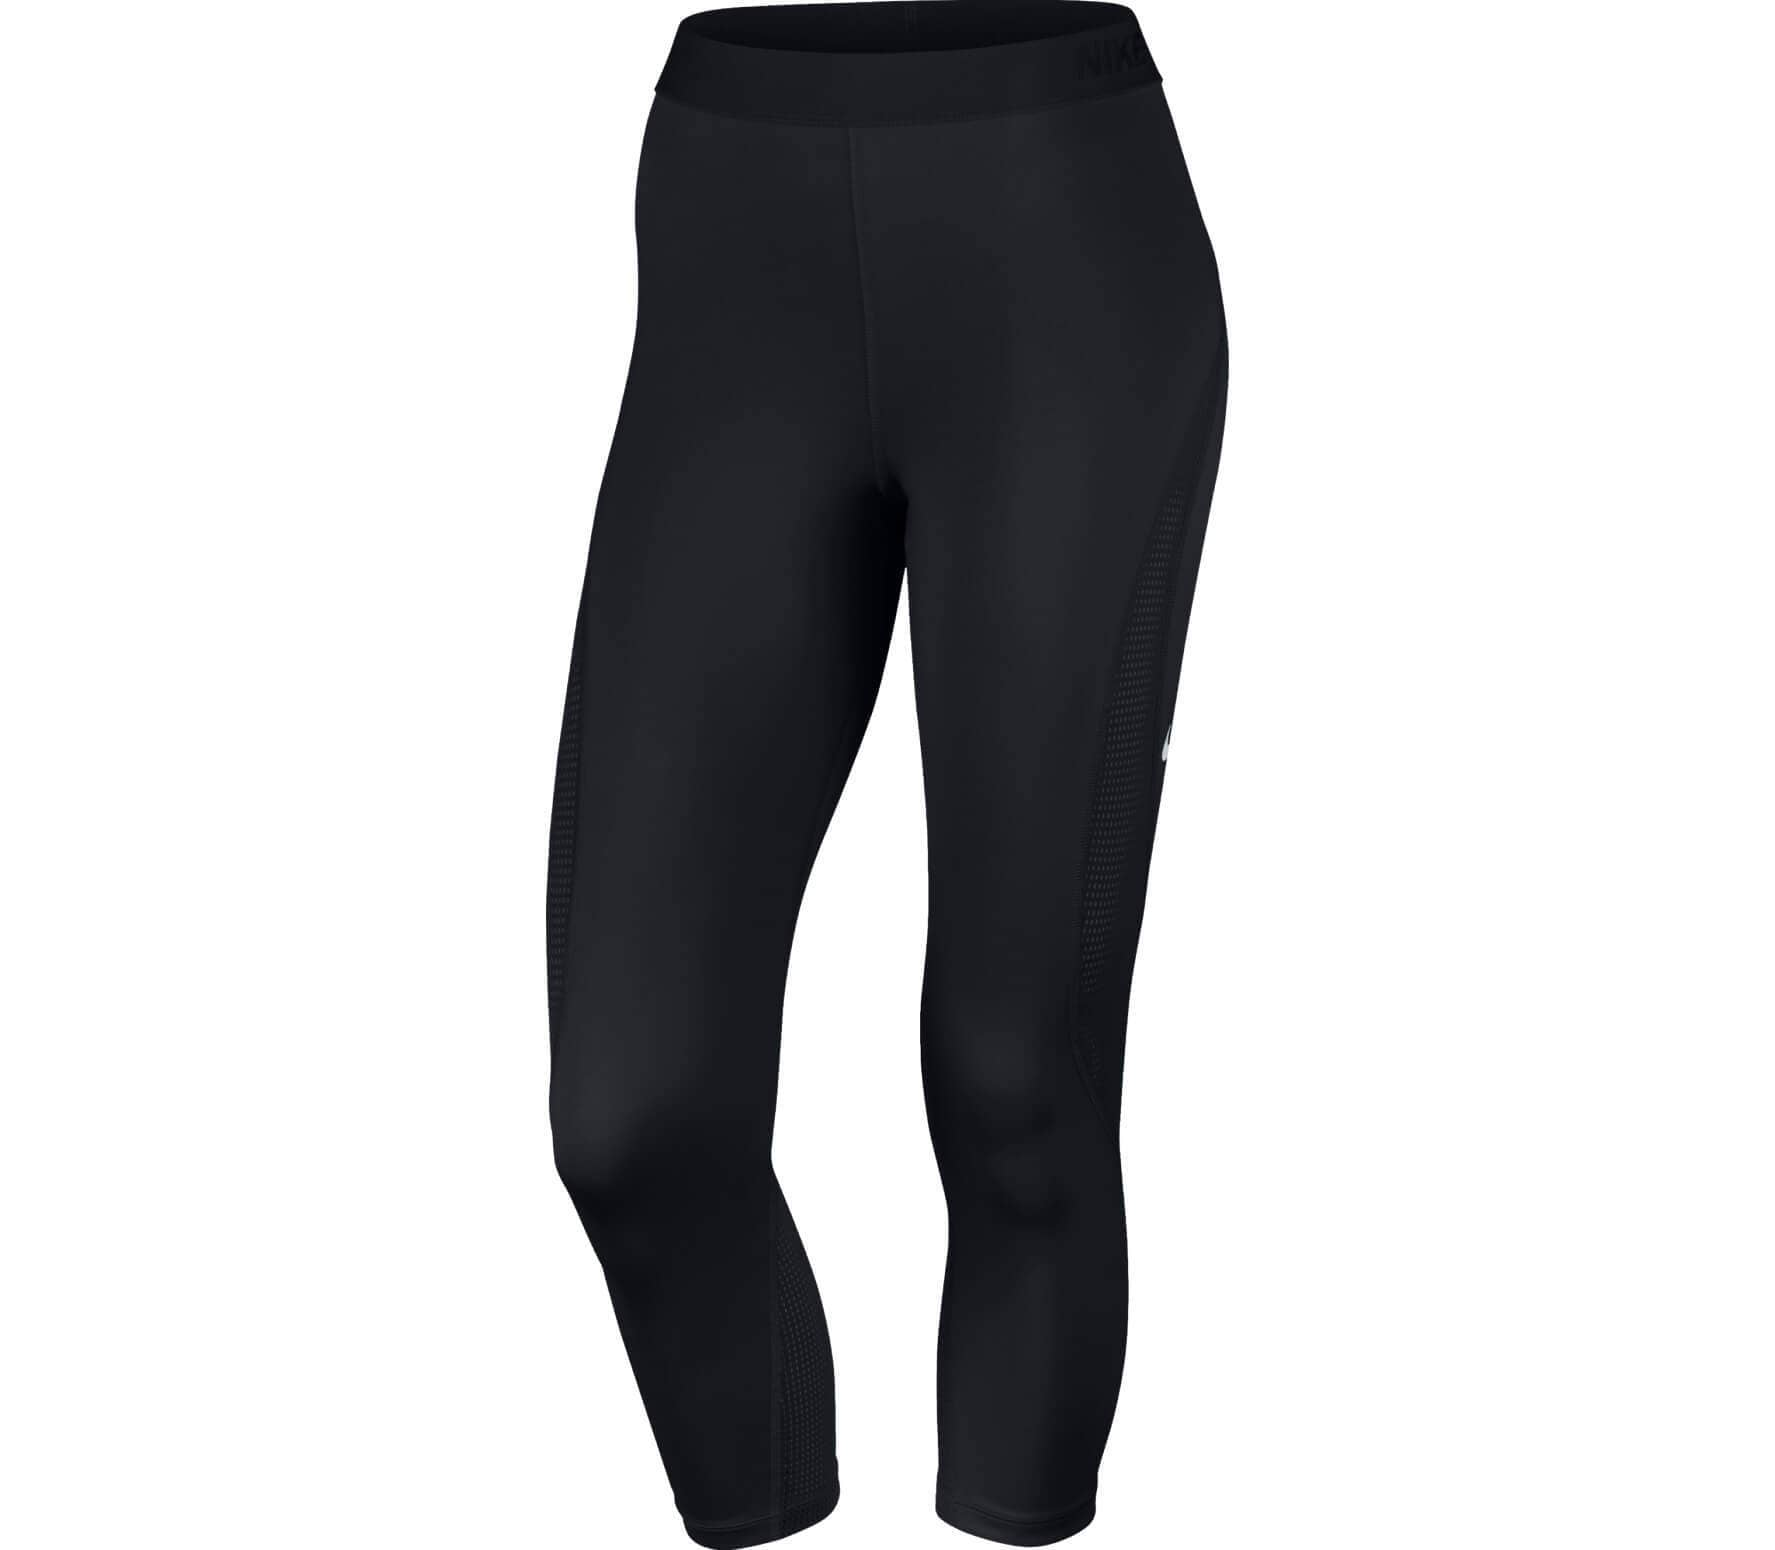 8f5dadf91211 Nike - Pro Hypercool women s training capri pants pants (black ...